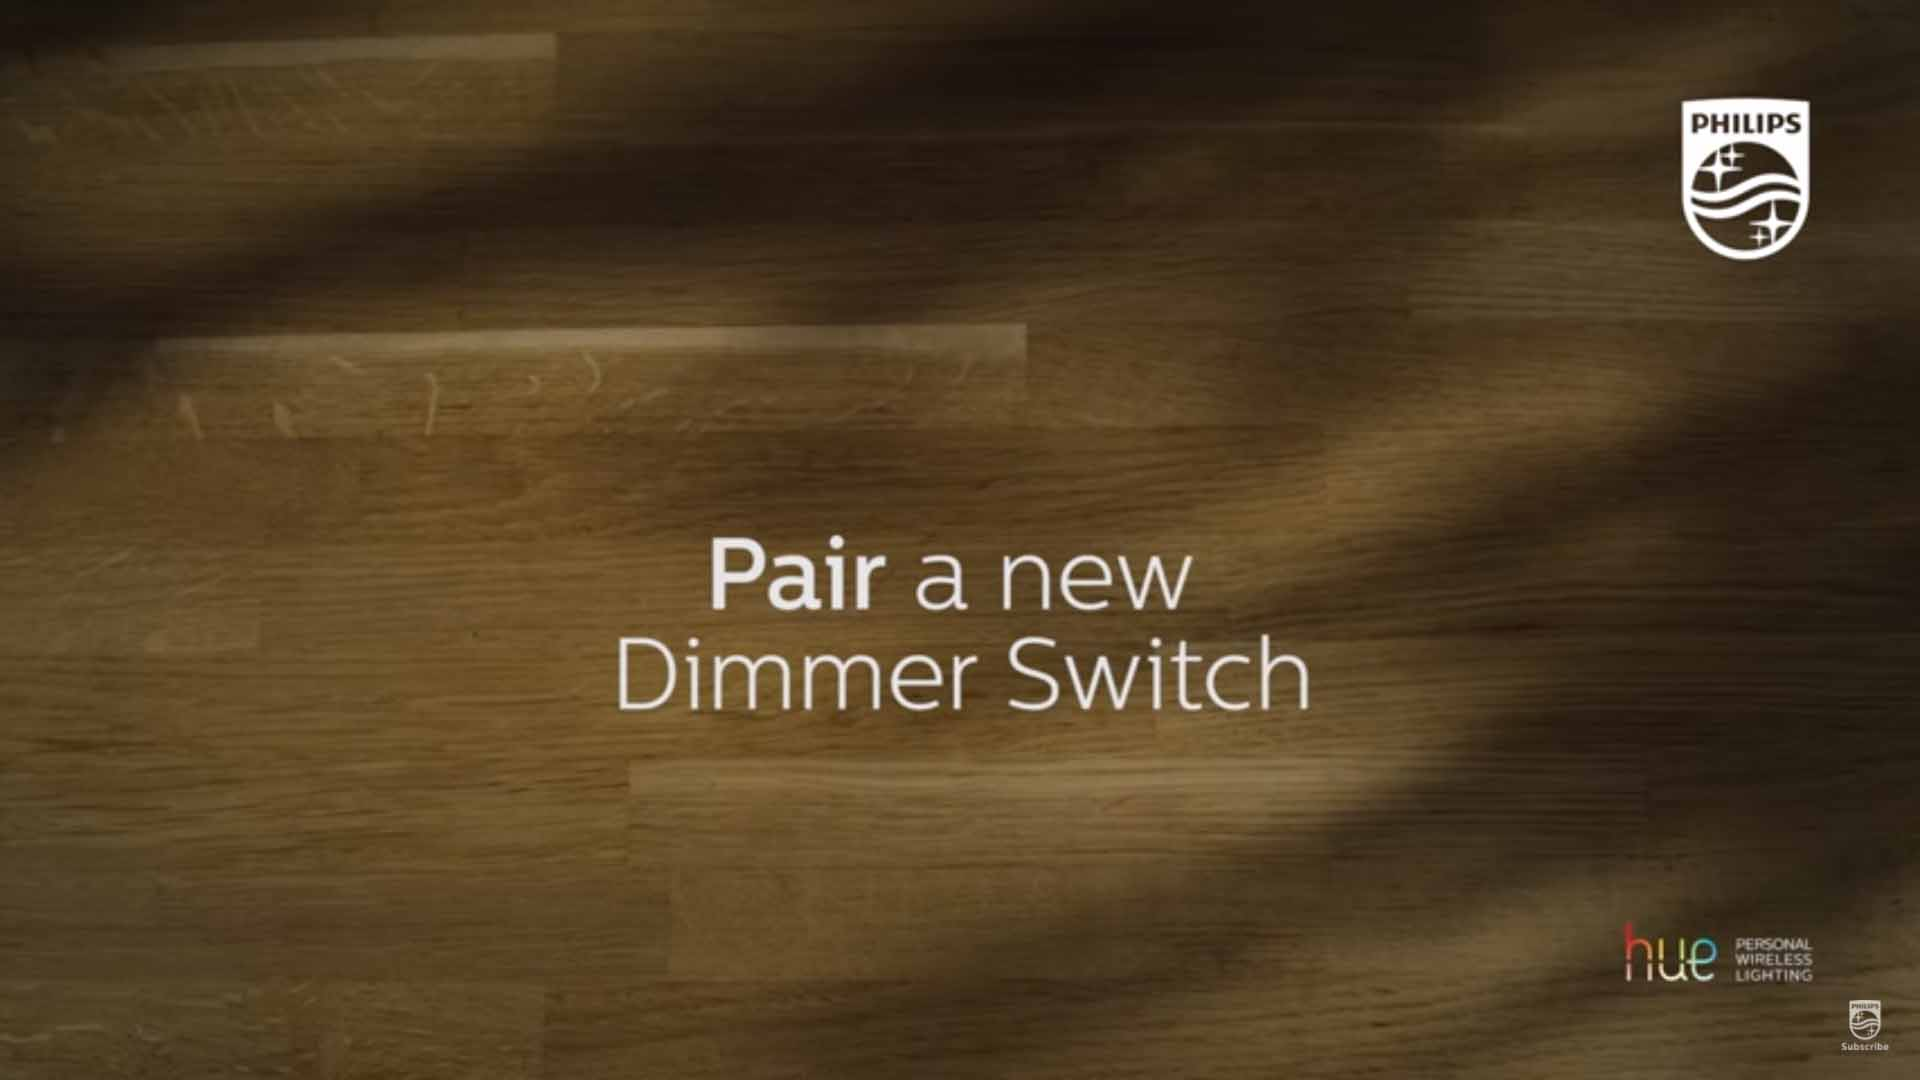 Philips Hue how to pair a new dimmer switch